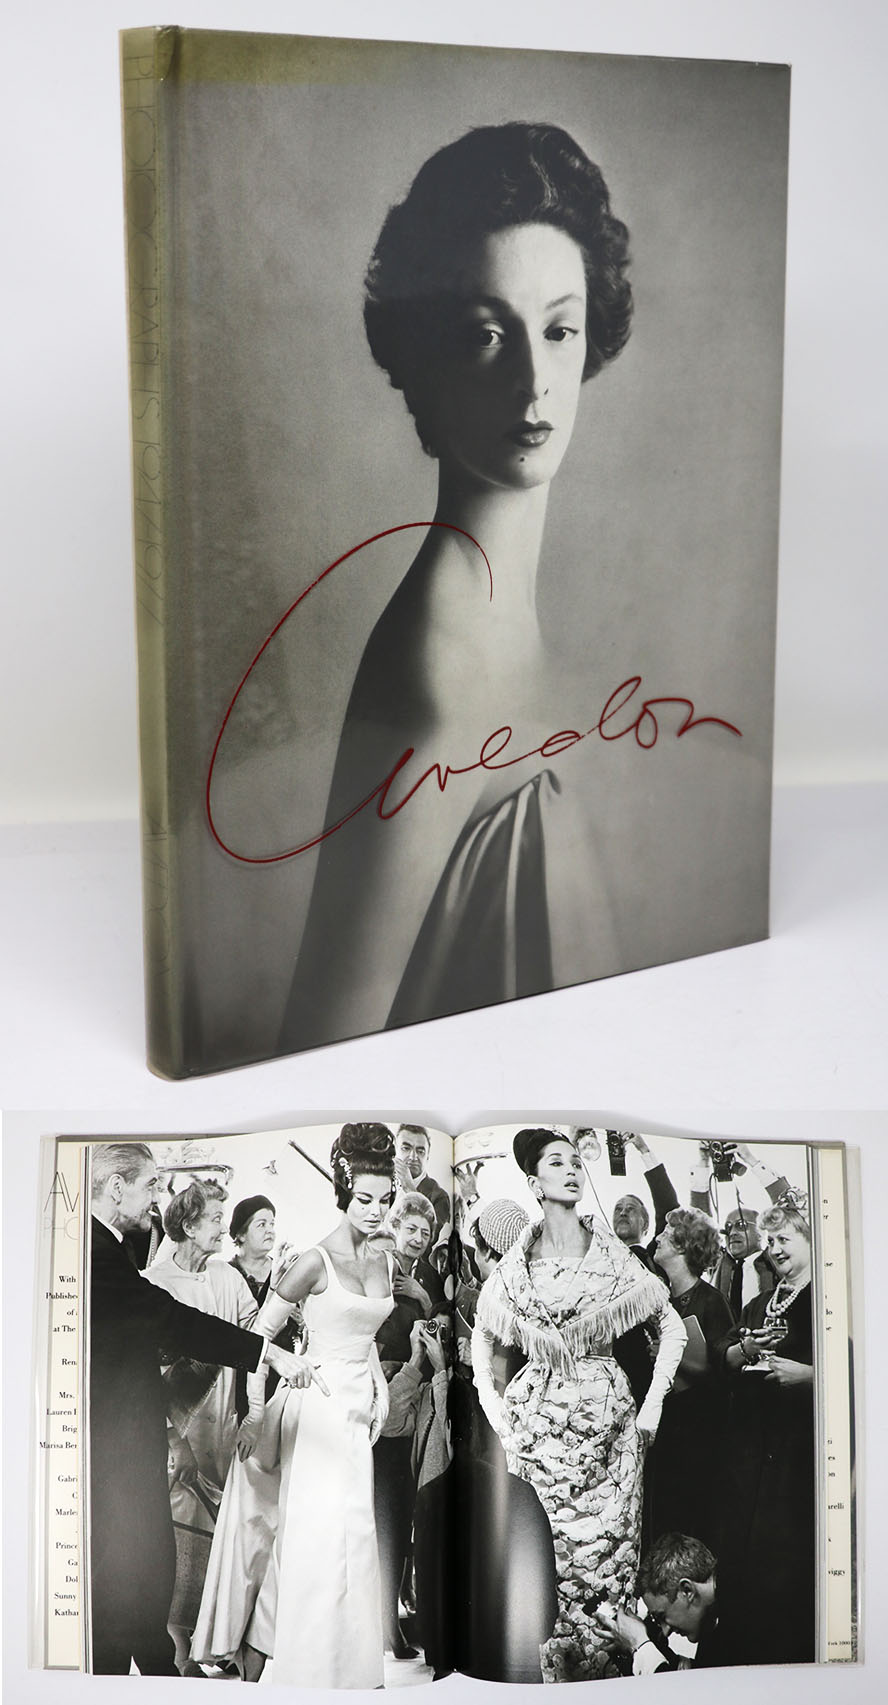 Richard Avedon: AVEDON PHOTOGRAPHS 1947-1977